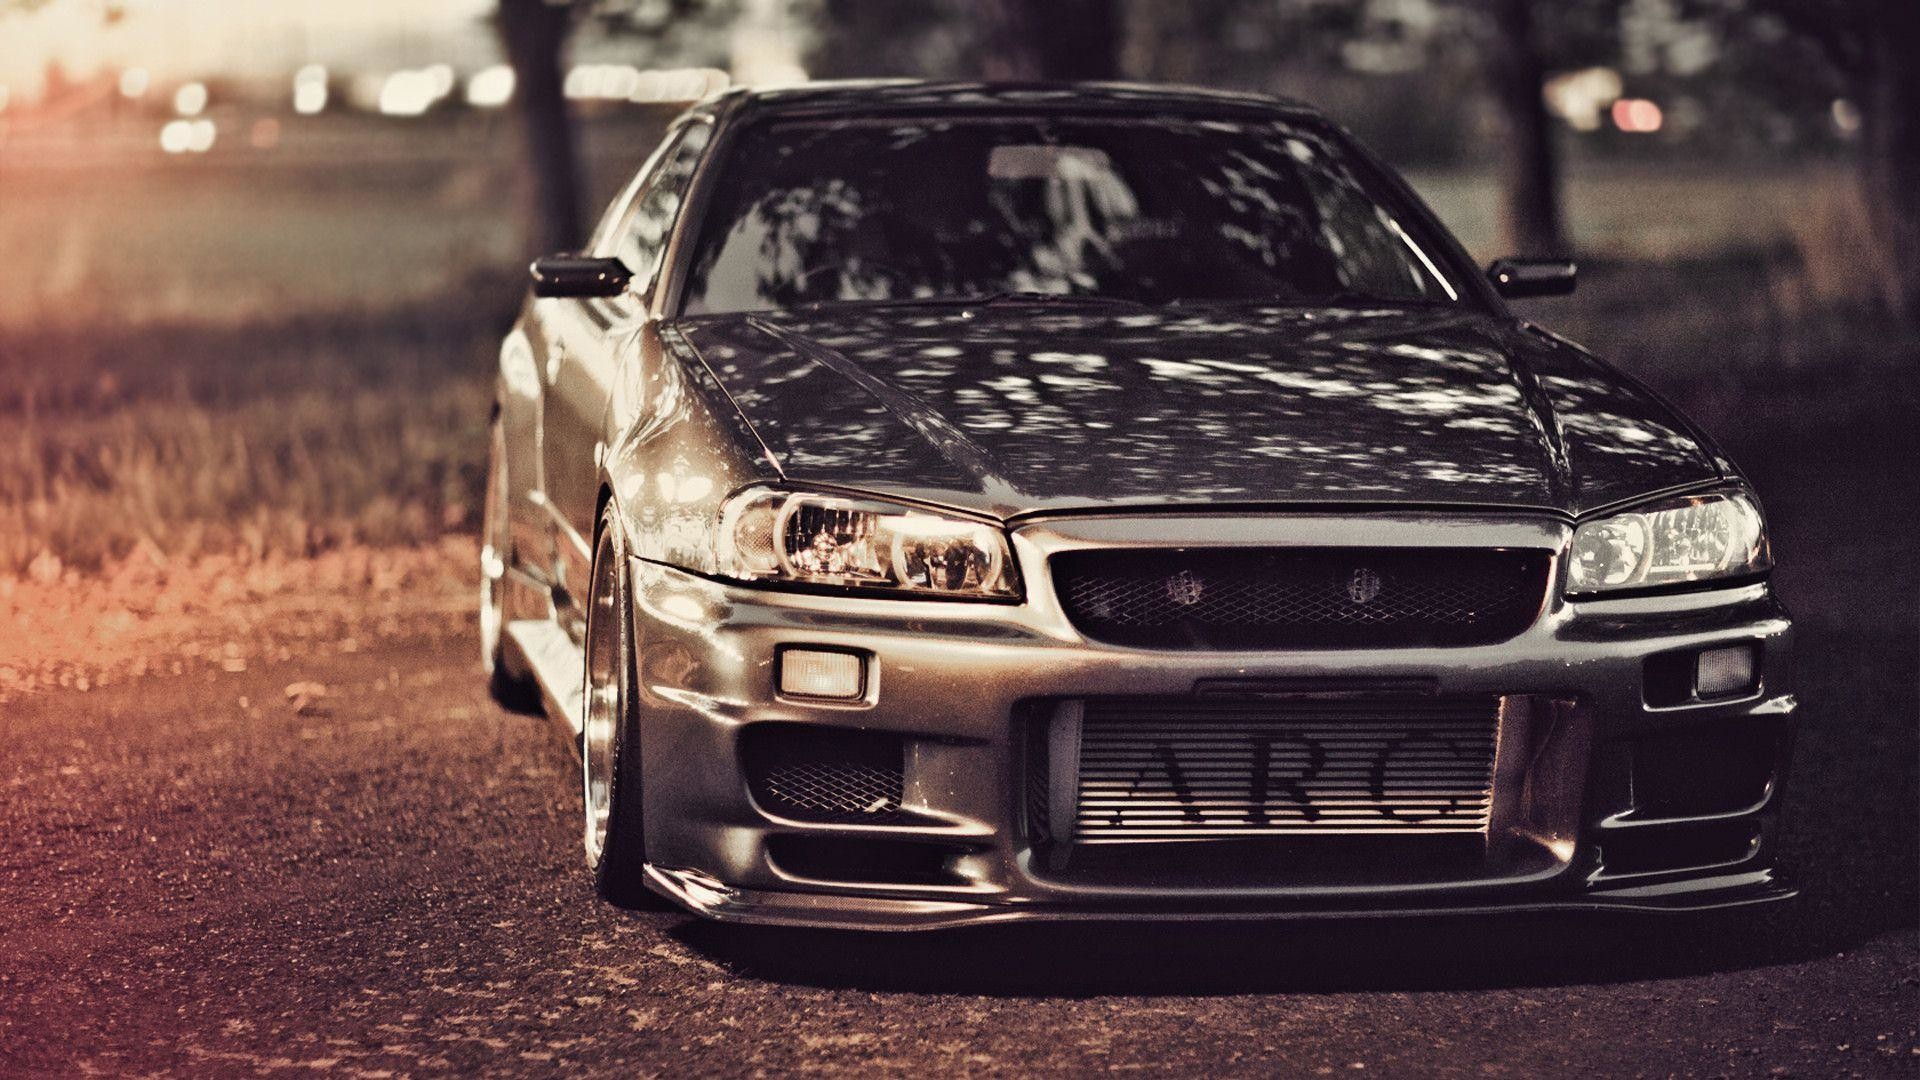 Nissan Gtr Hd Wallpaper >> Nissan Skyline R34 Wallpaper ·①